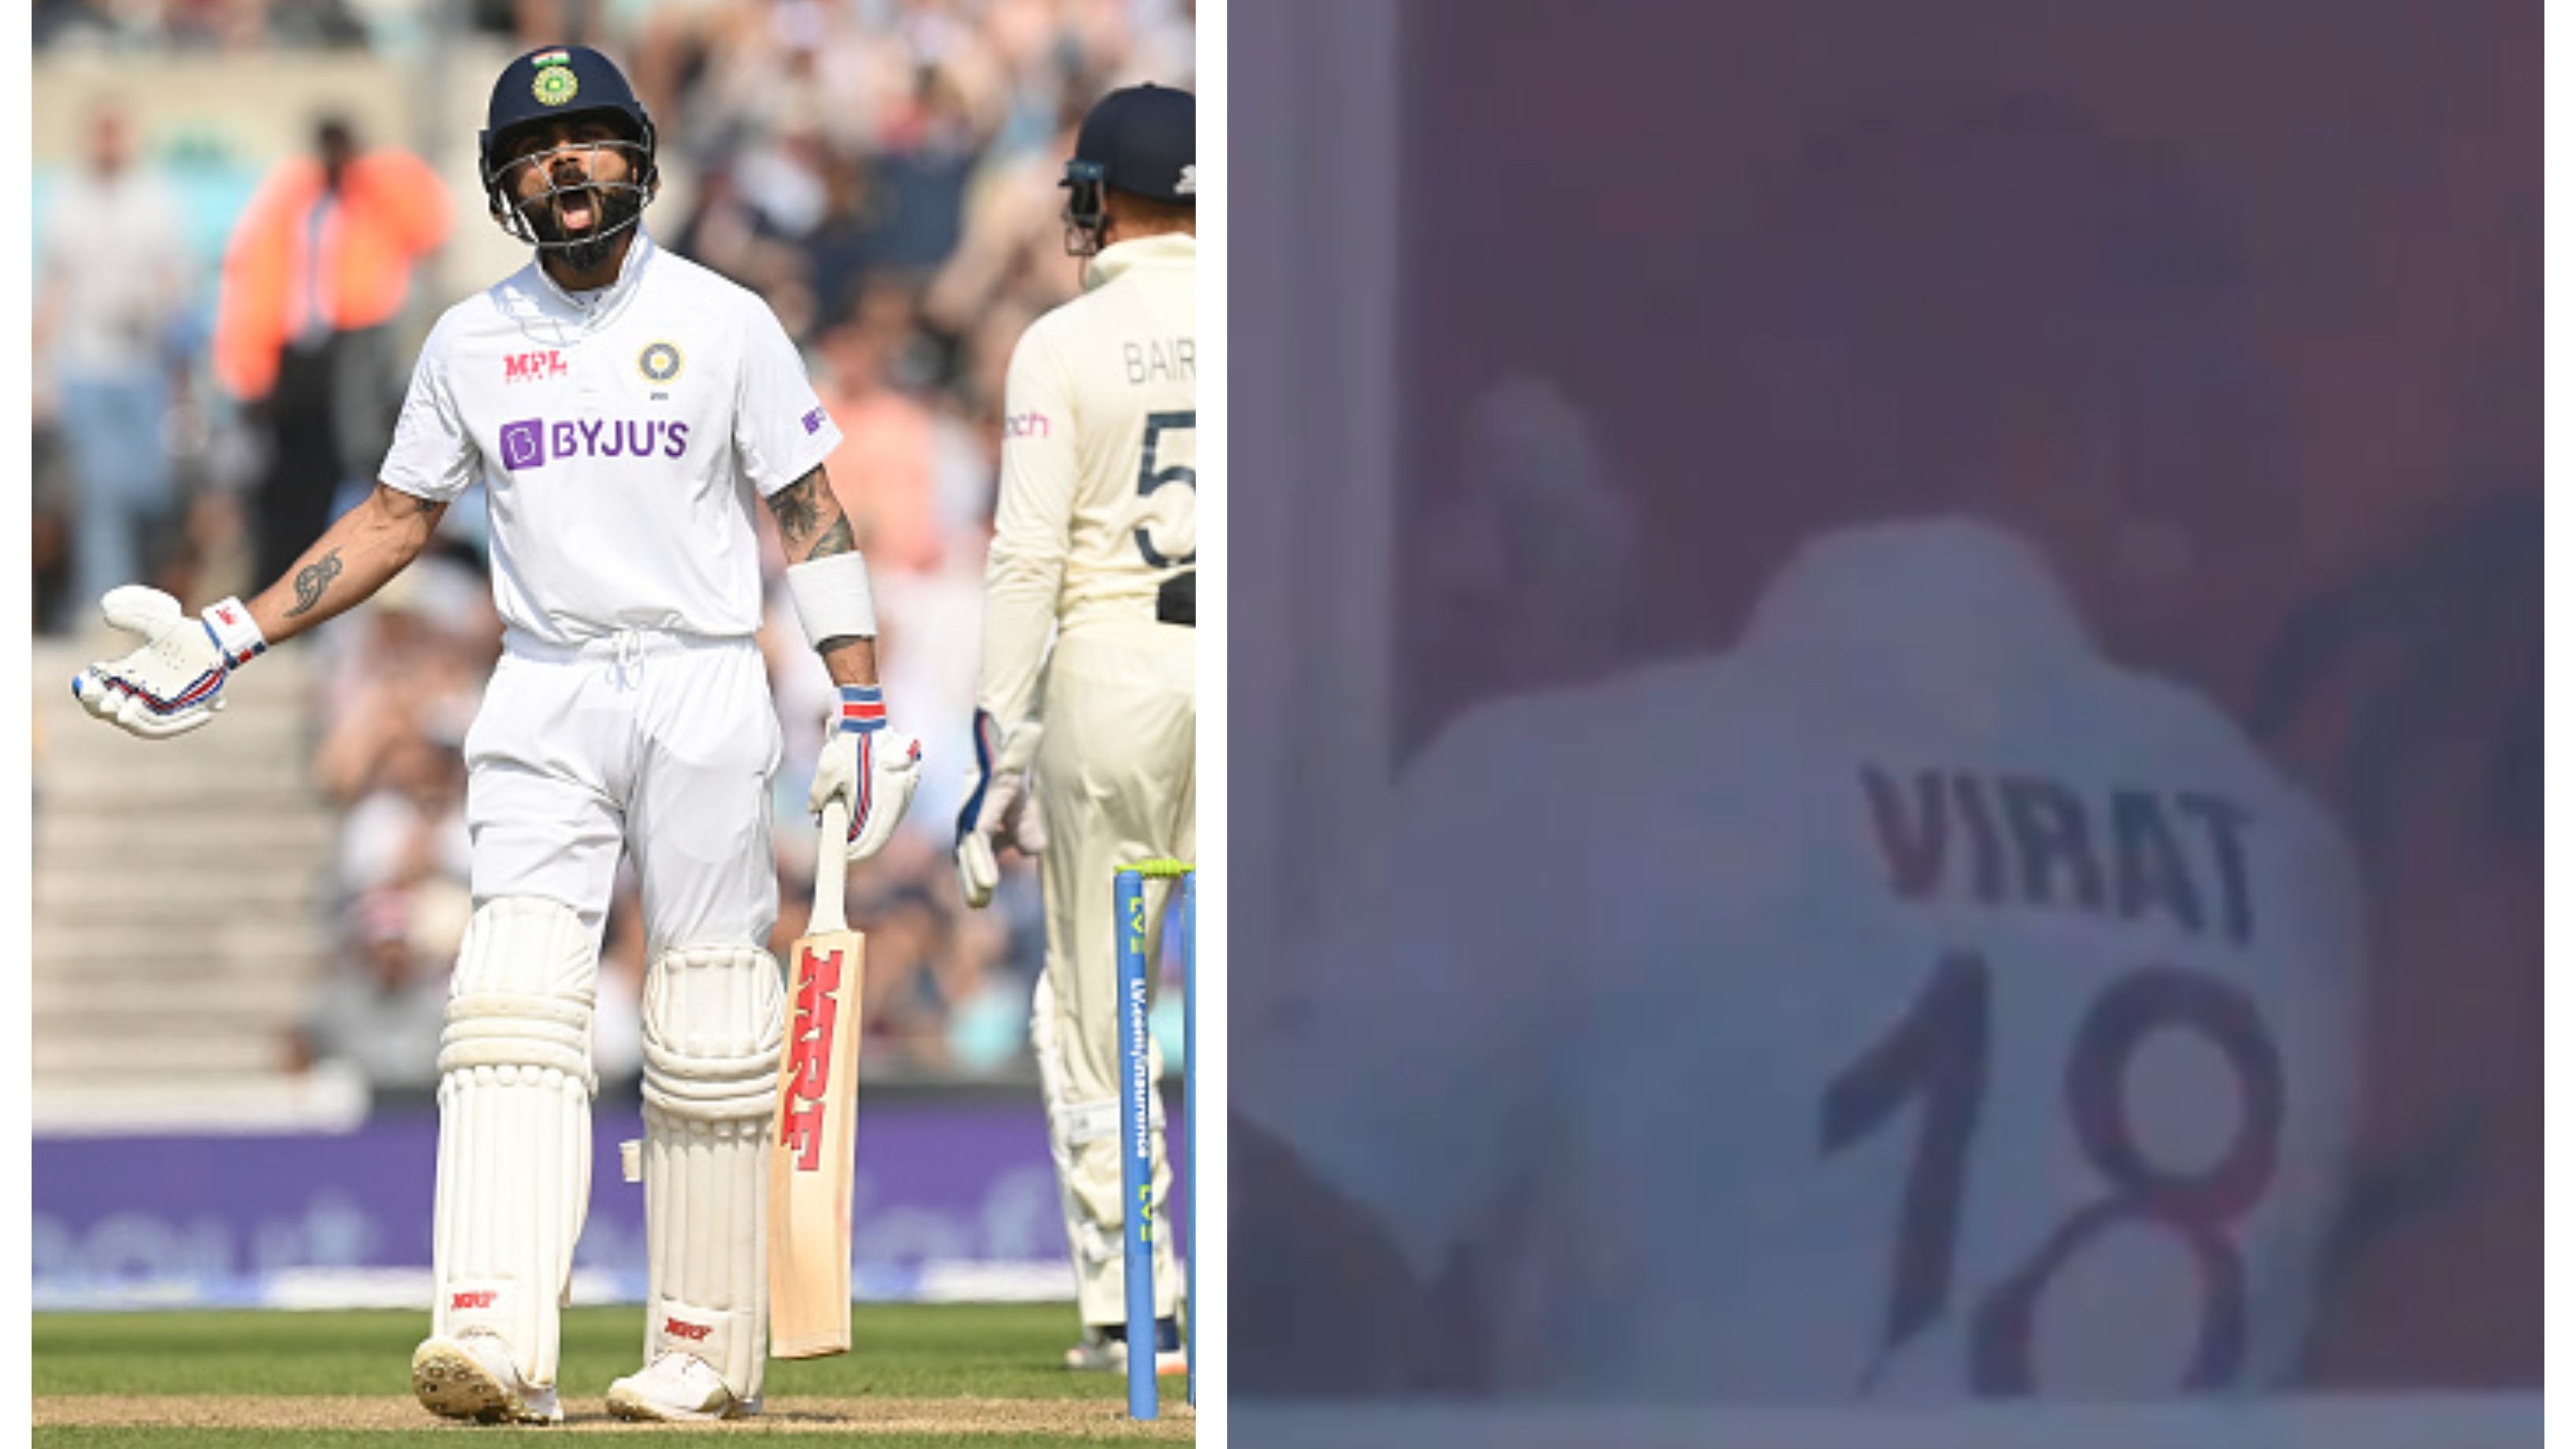 ENG v IND 2021: WATCH – Distraught Virat Kohli smashes his hand against the wall after his dismissal